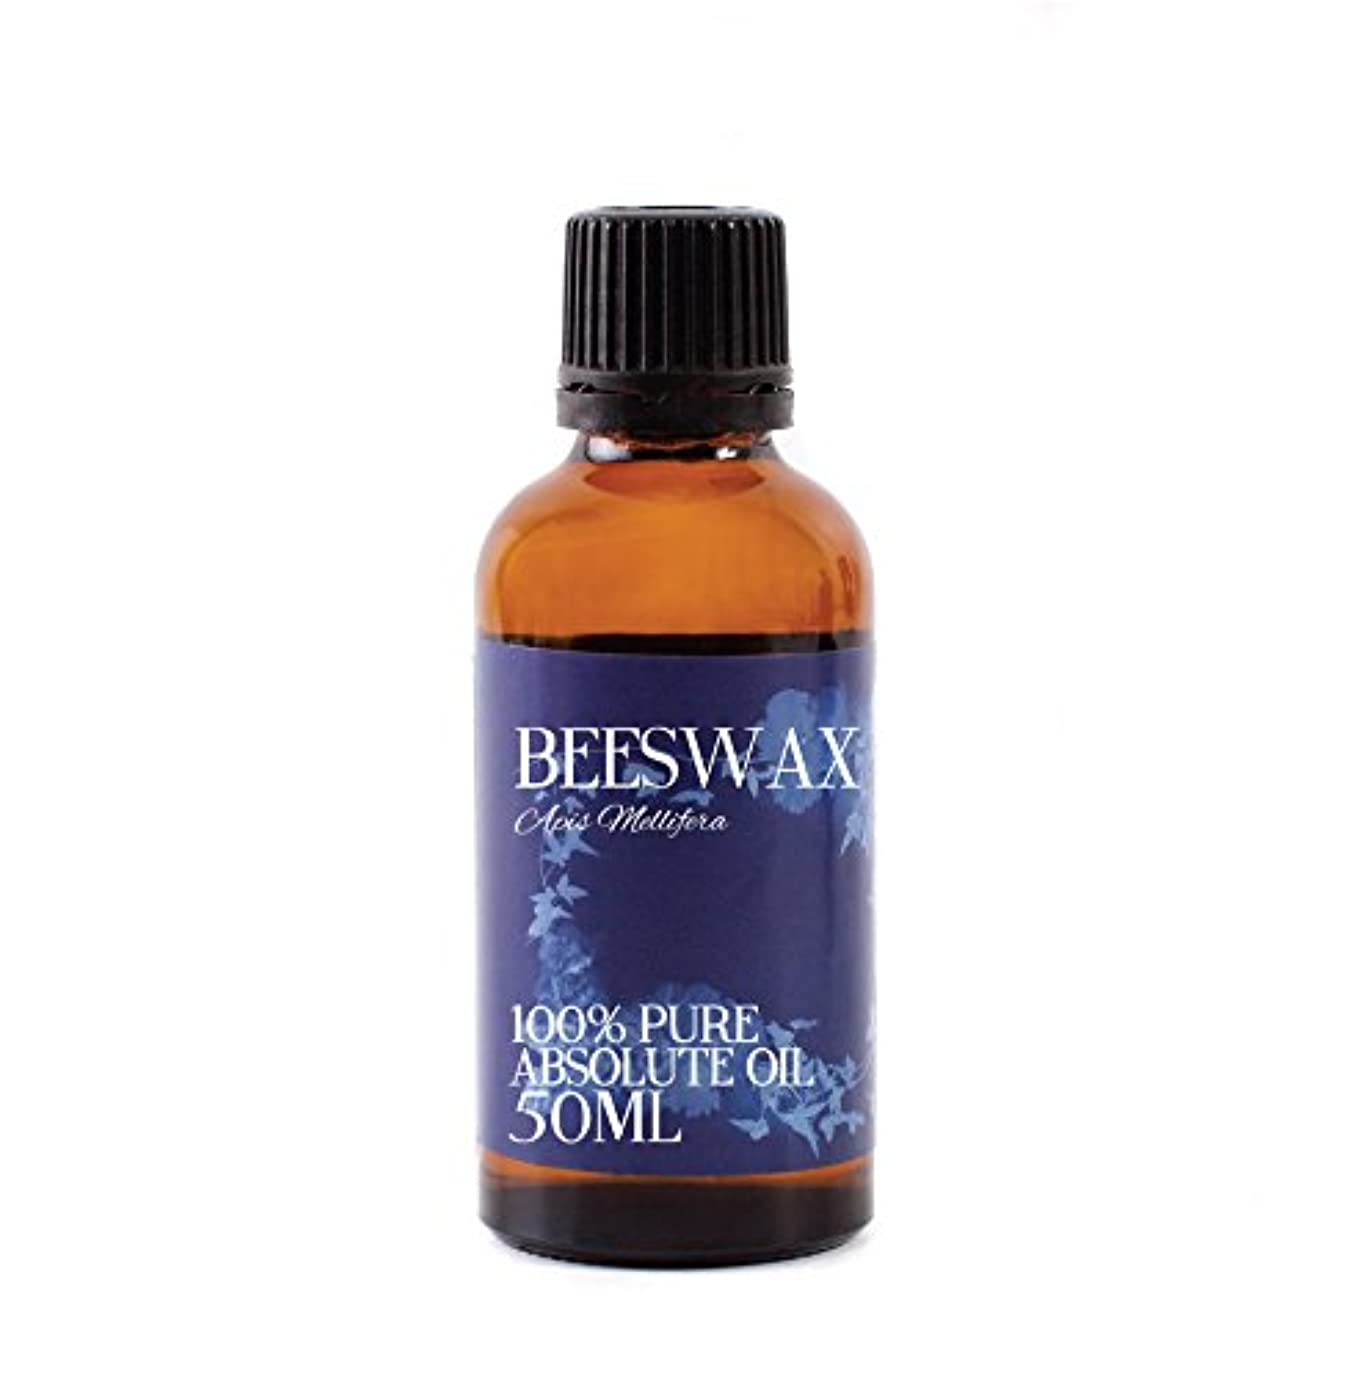 炭素絶対に著者Beeswax Absolute Oil 50ml - 100% Pure